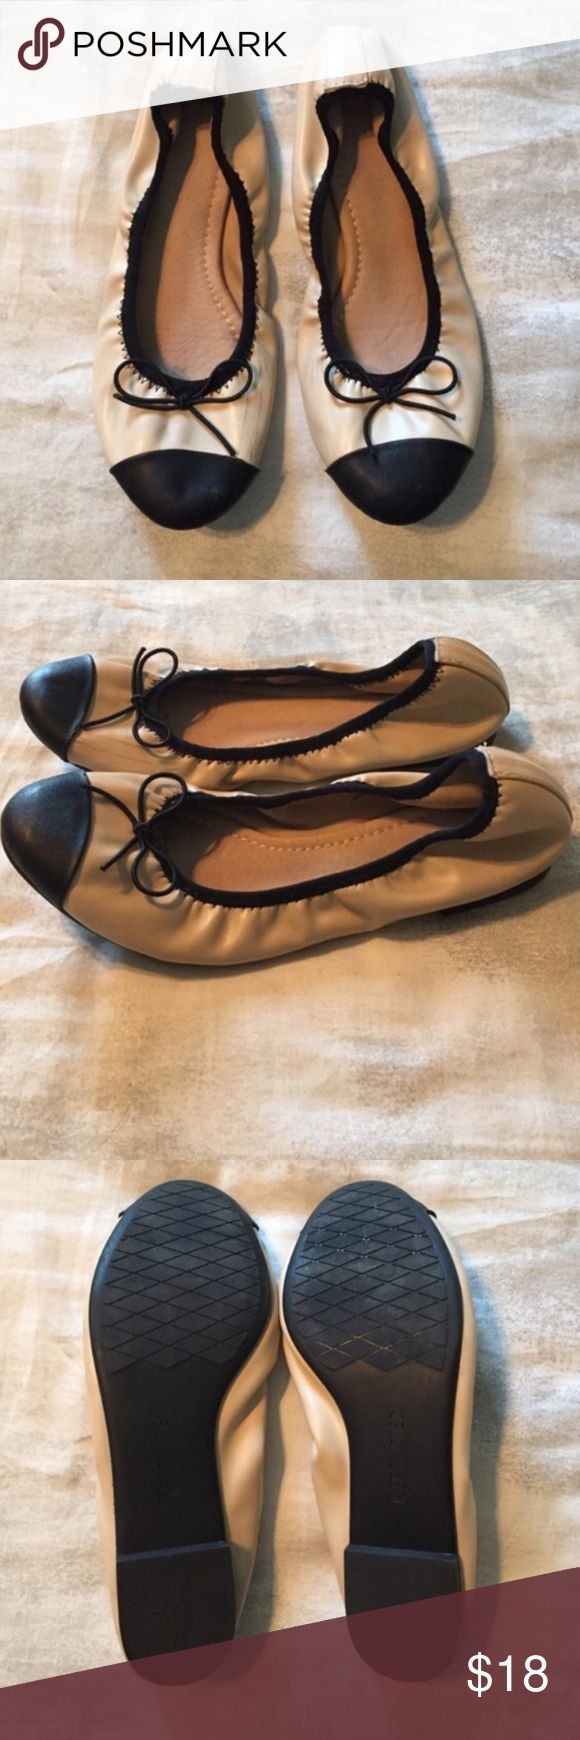 Restricted Ballet Flats Moderately worn, few scuffs on inside. Very comfortable! Restricted Shoes Flats & Loafers